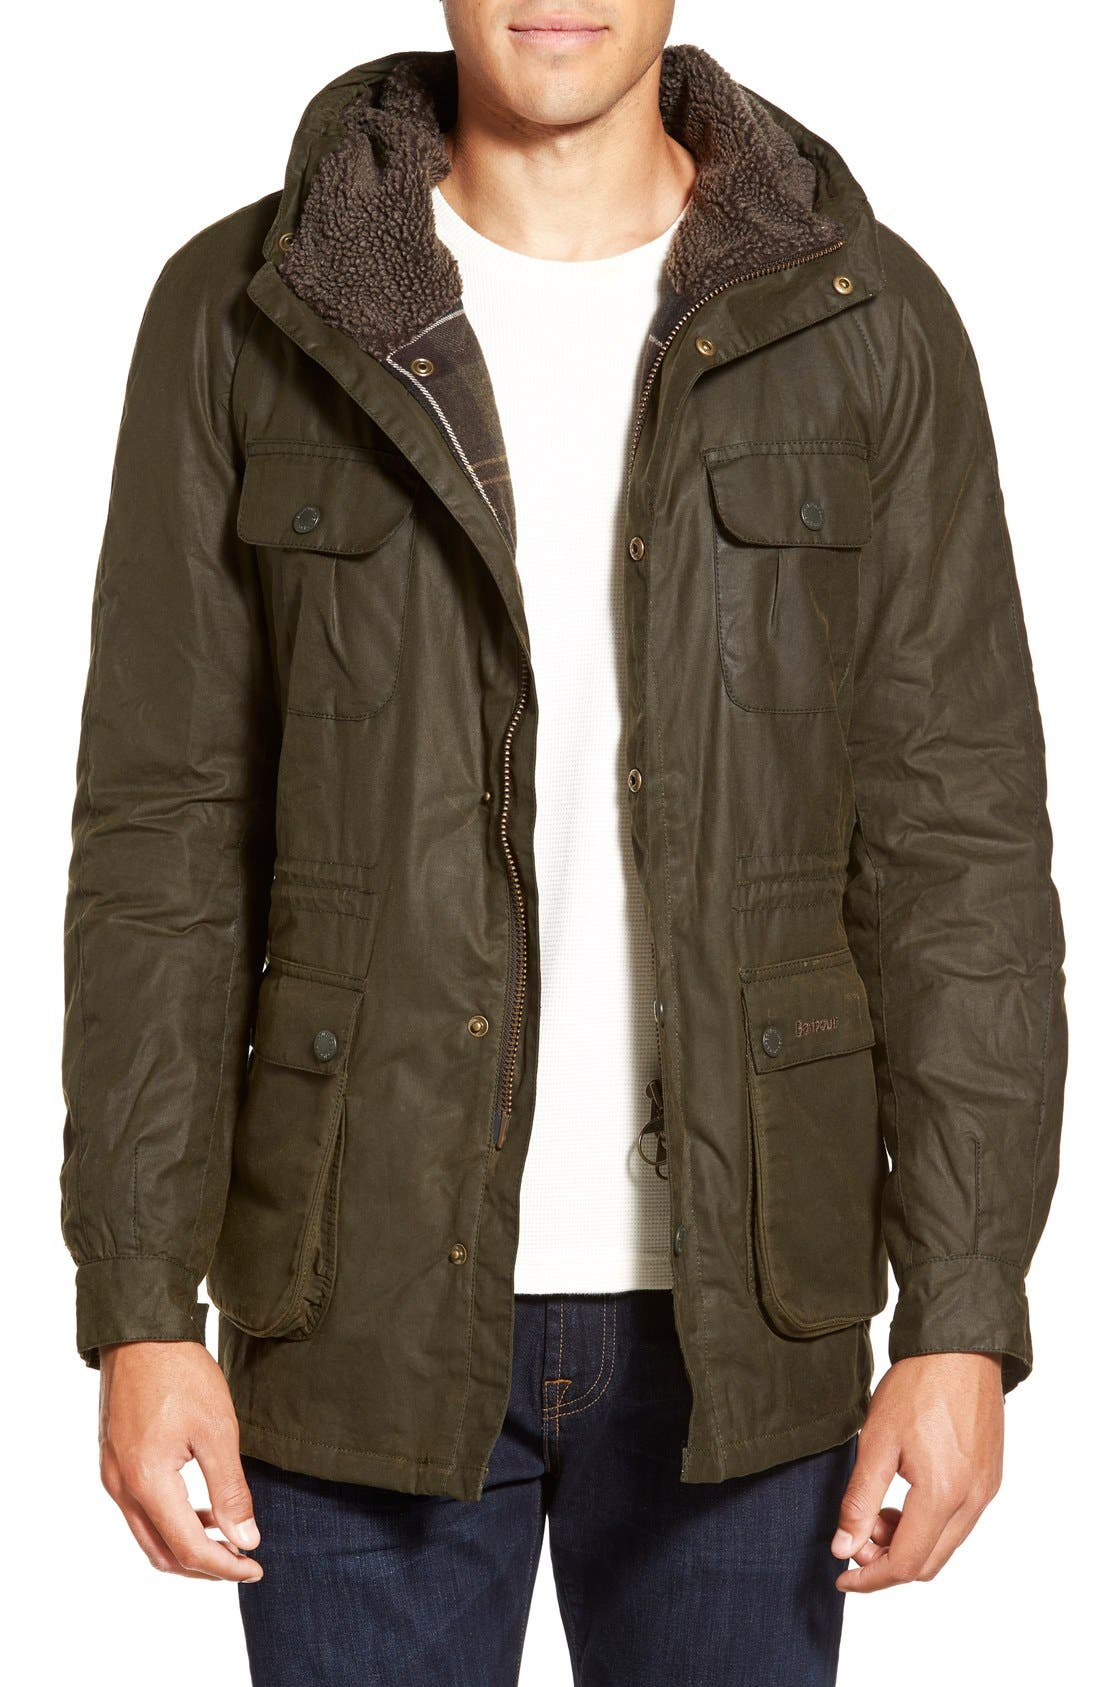 Barbour waxed parka jacket